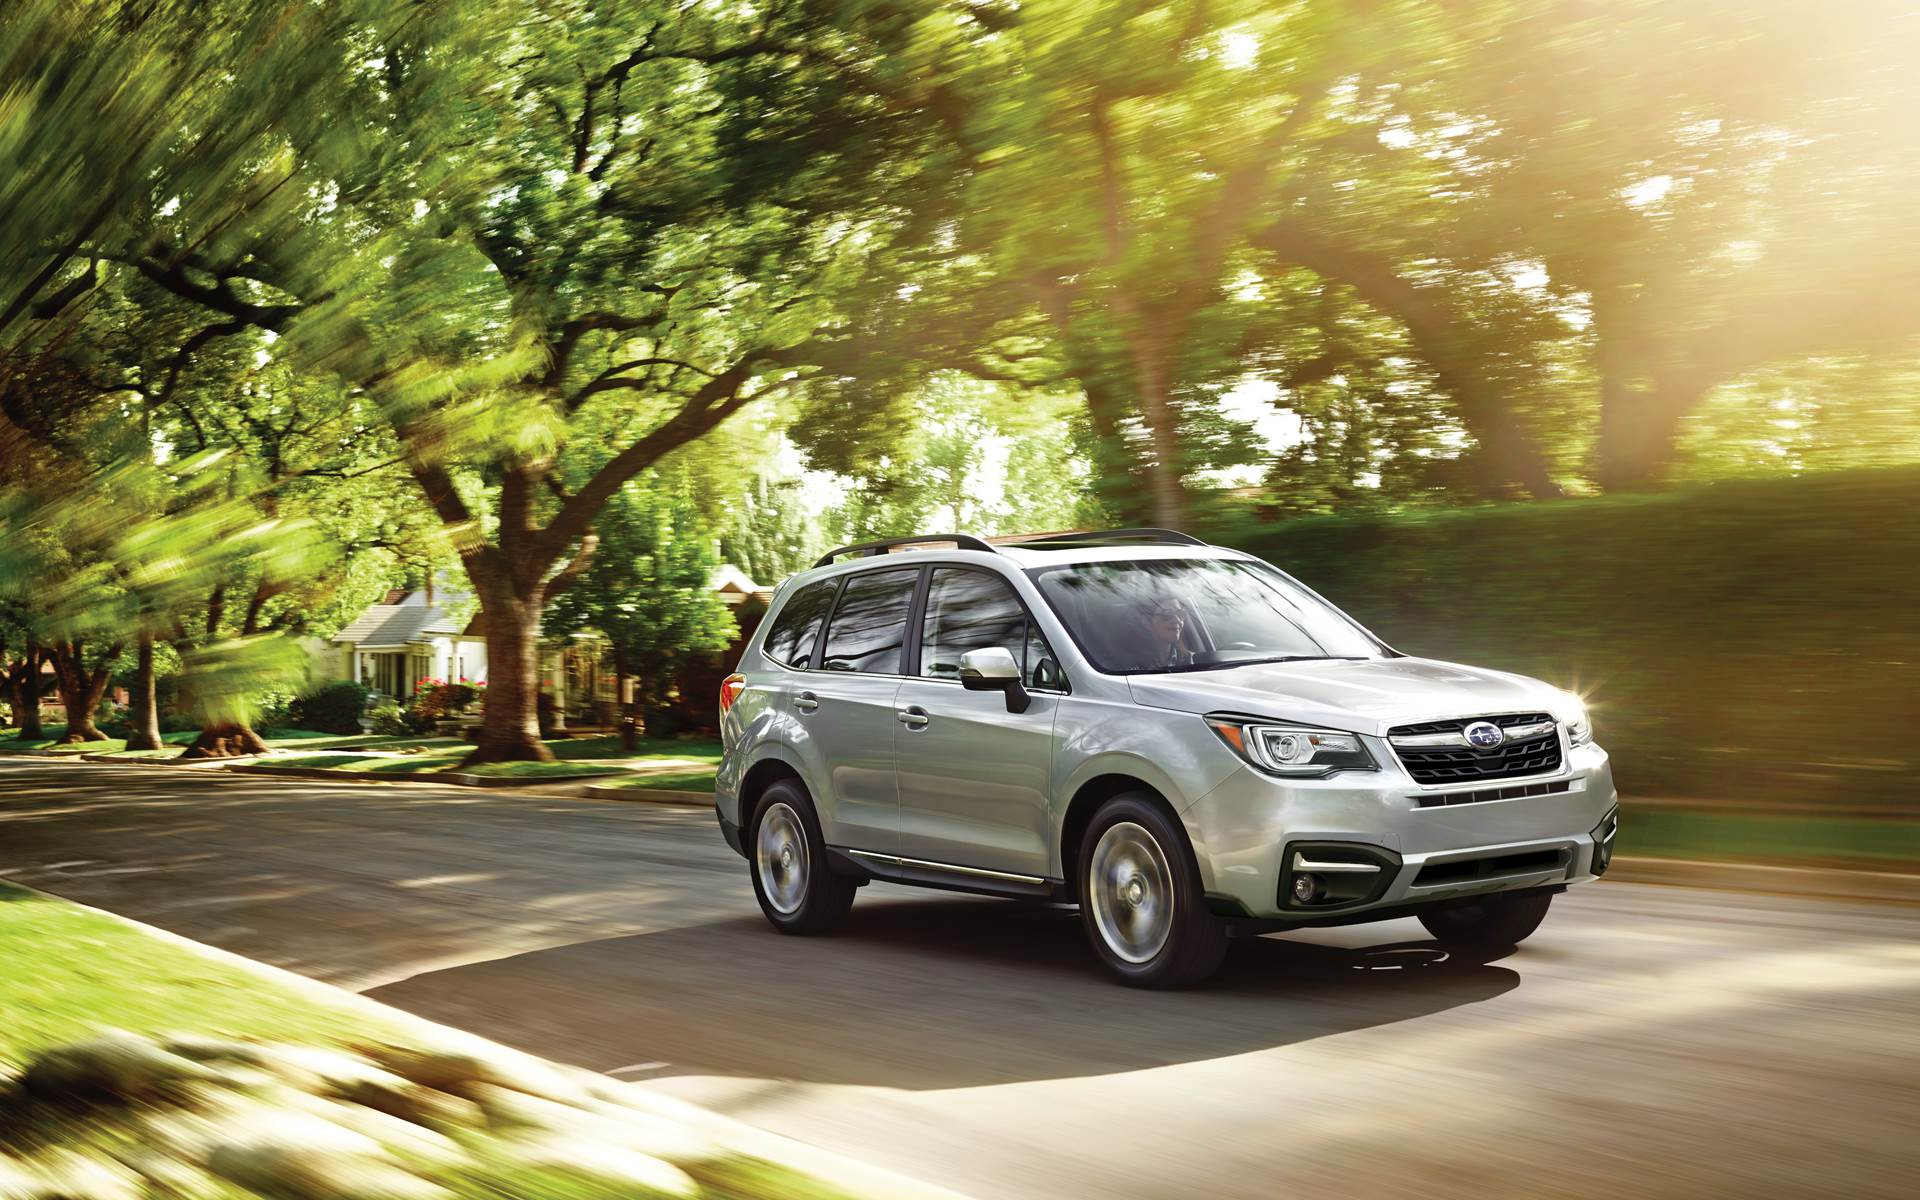 2018 Subaru Forester Ice Silver Exterior Front View